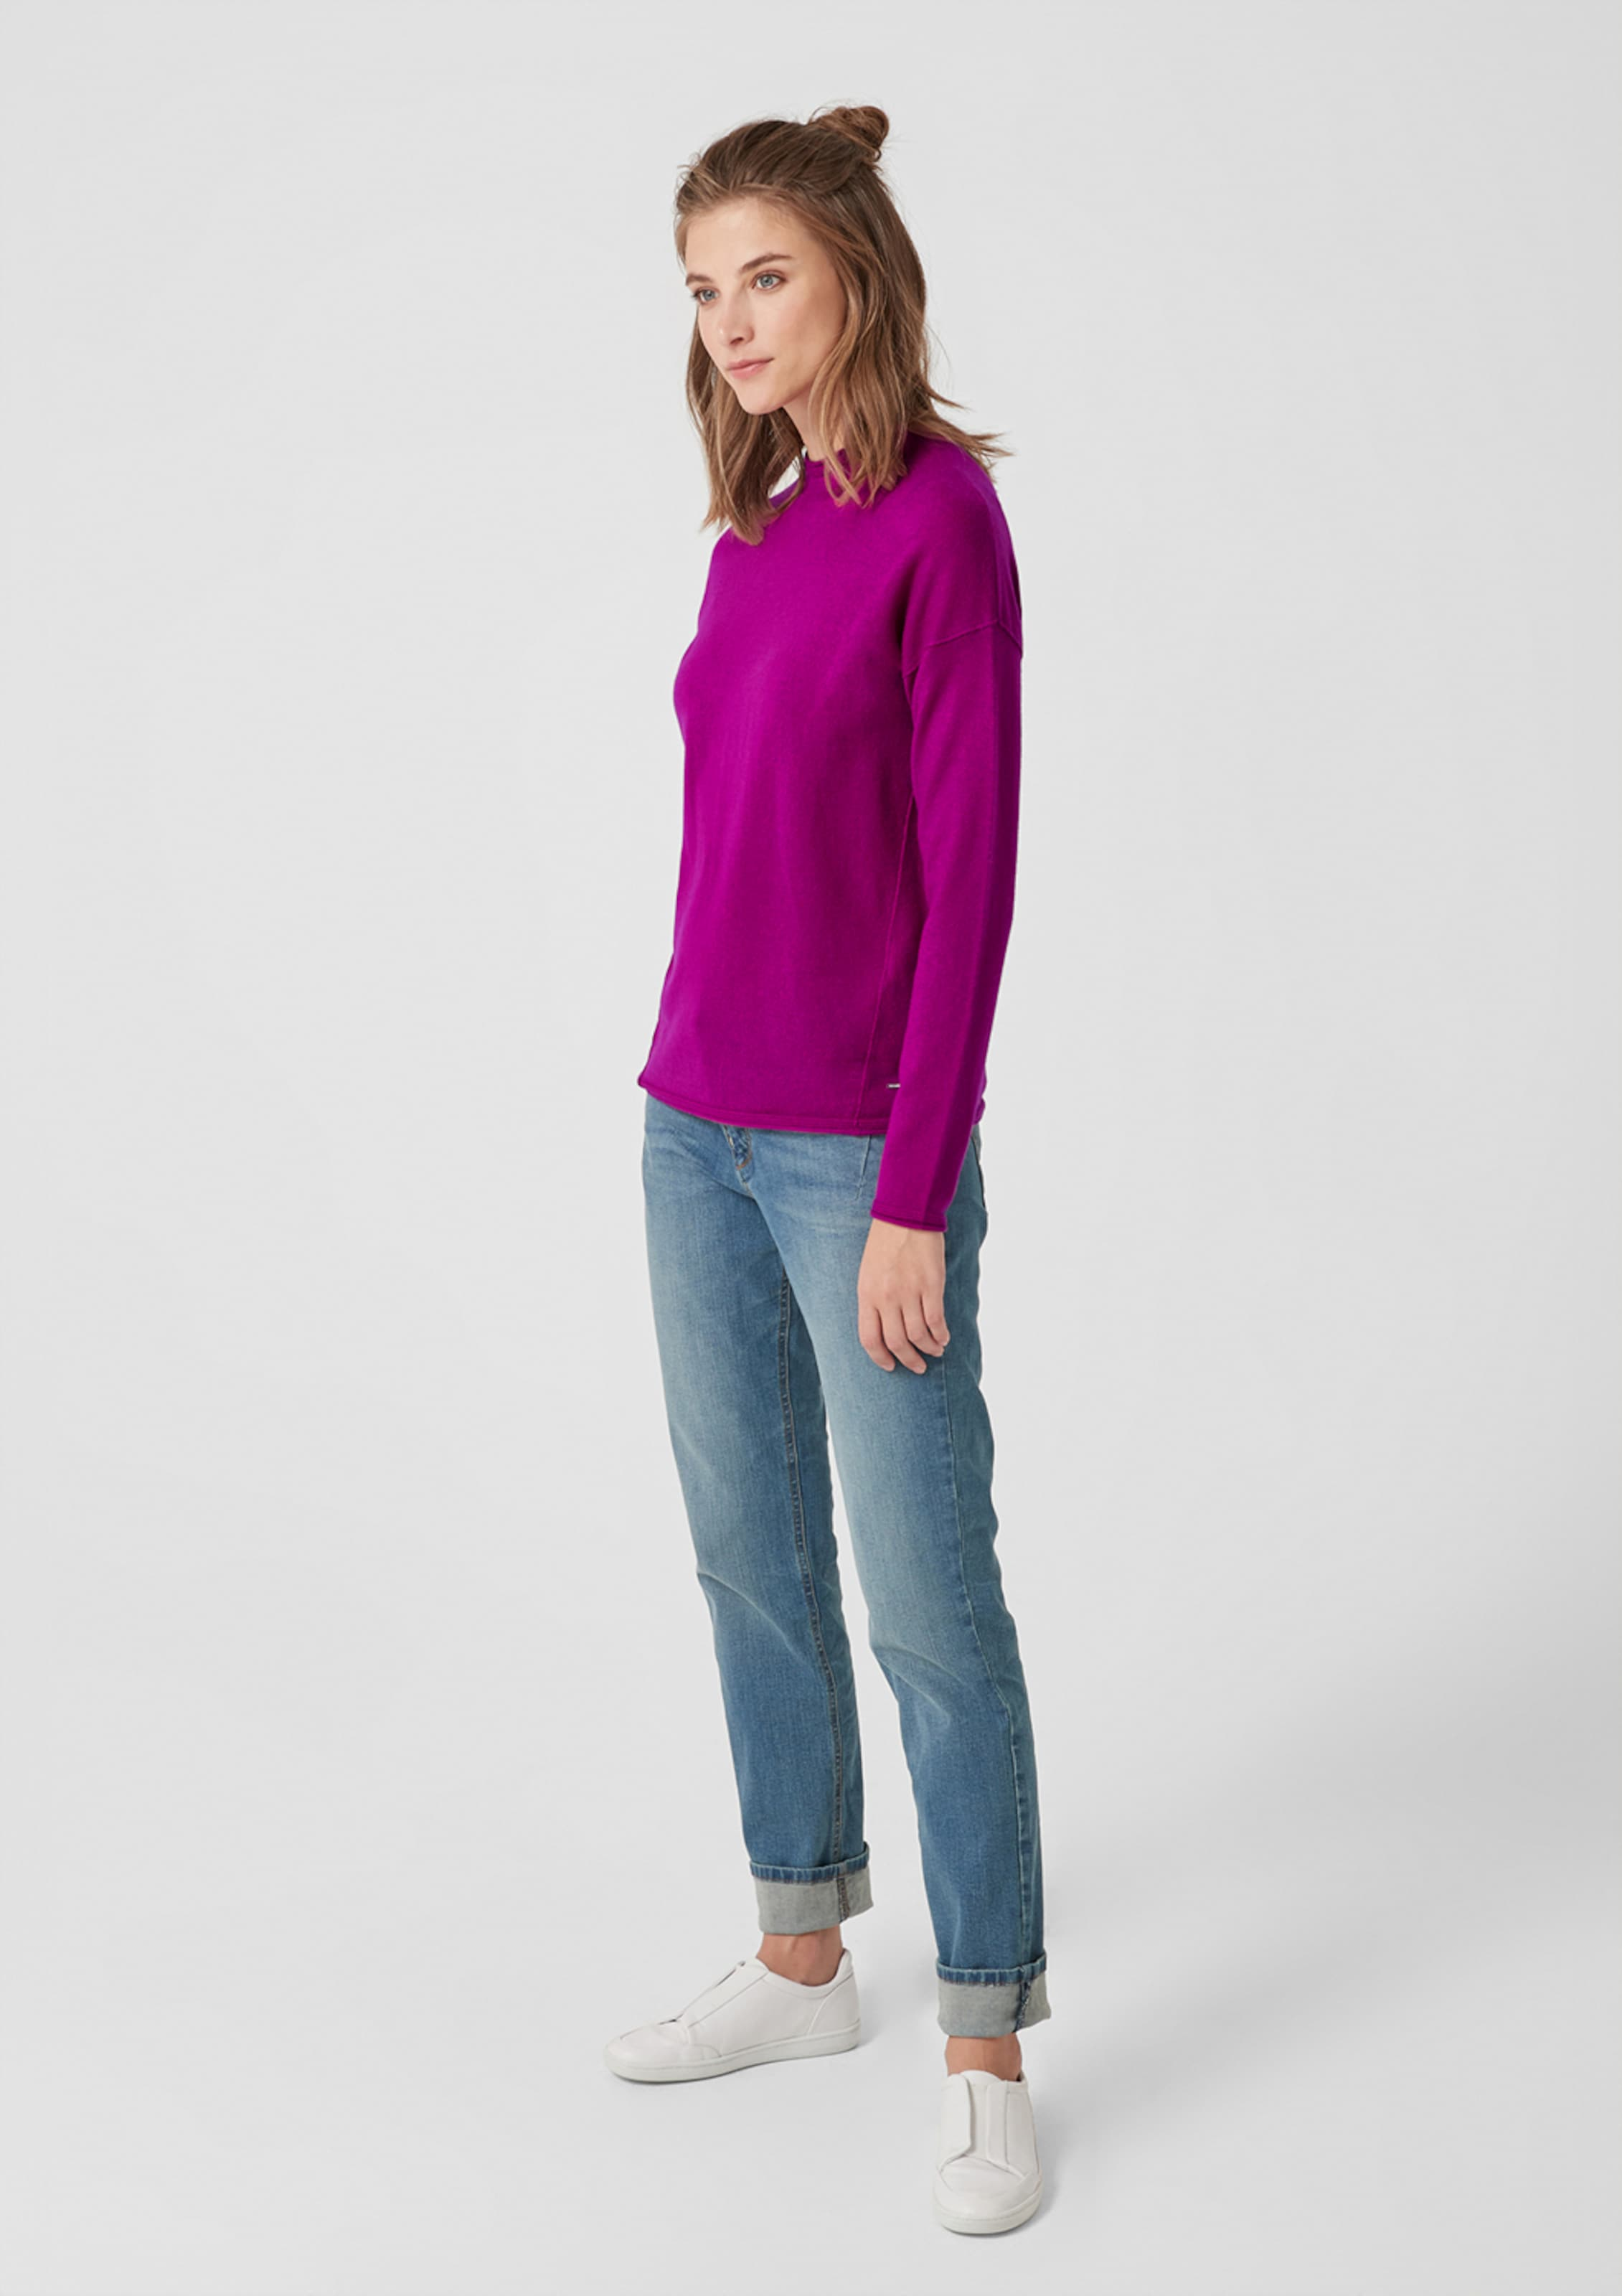 Pullover oliver Red Label In Cyclam S q3Ajc54RL